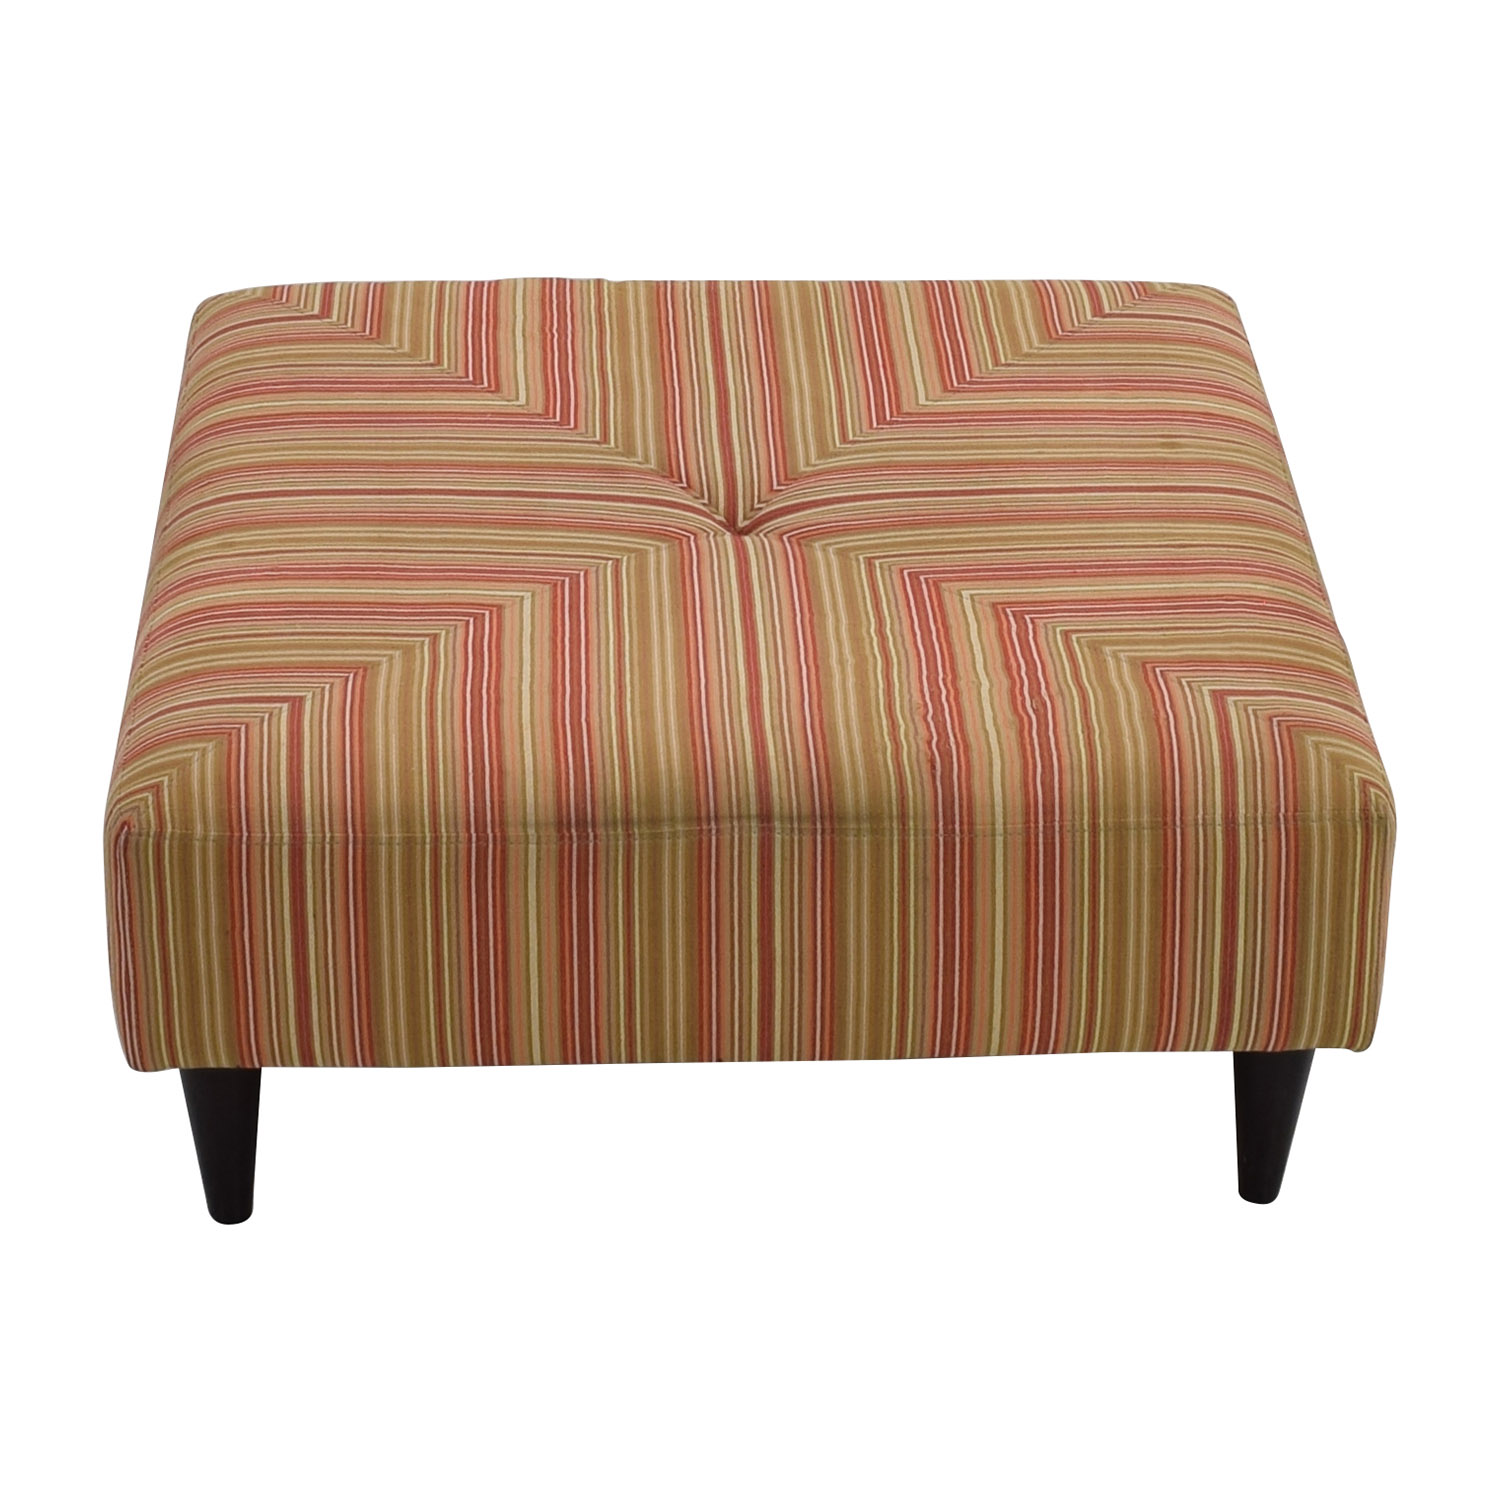 Macys Lift Top Coffee Table.85 Off Macy S Macy S Red And Green Striped Upholstered Ottoman Chairs